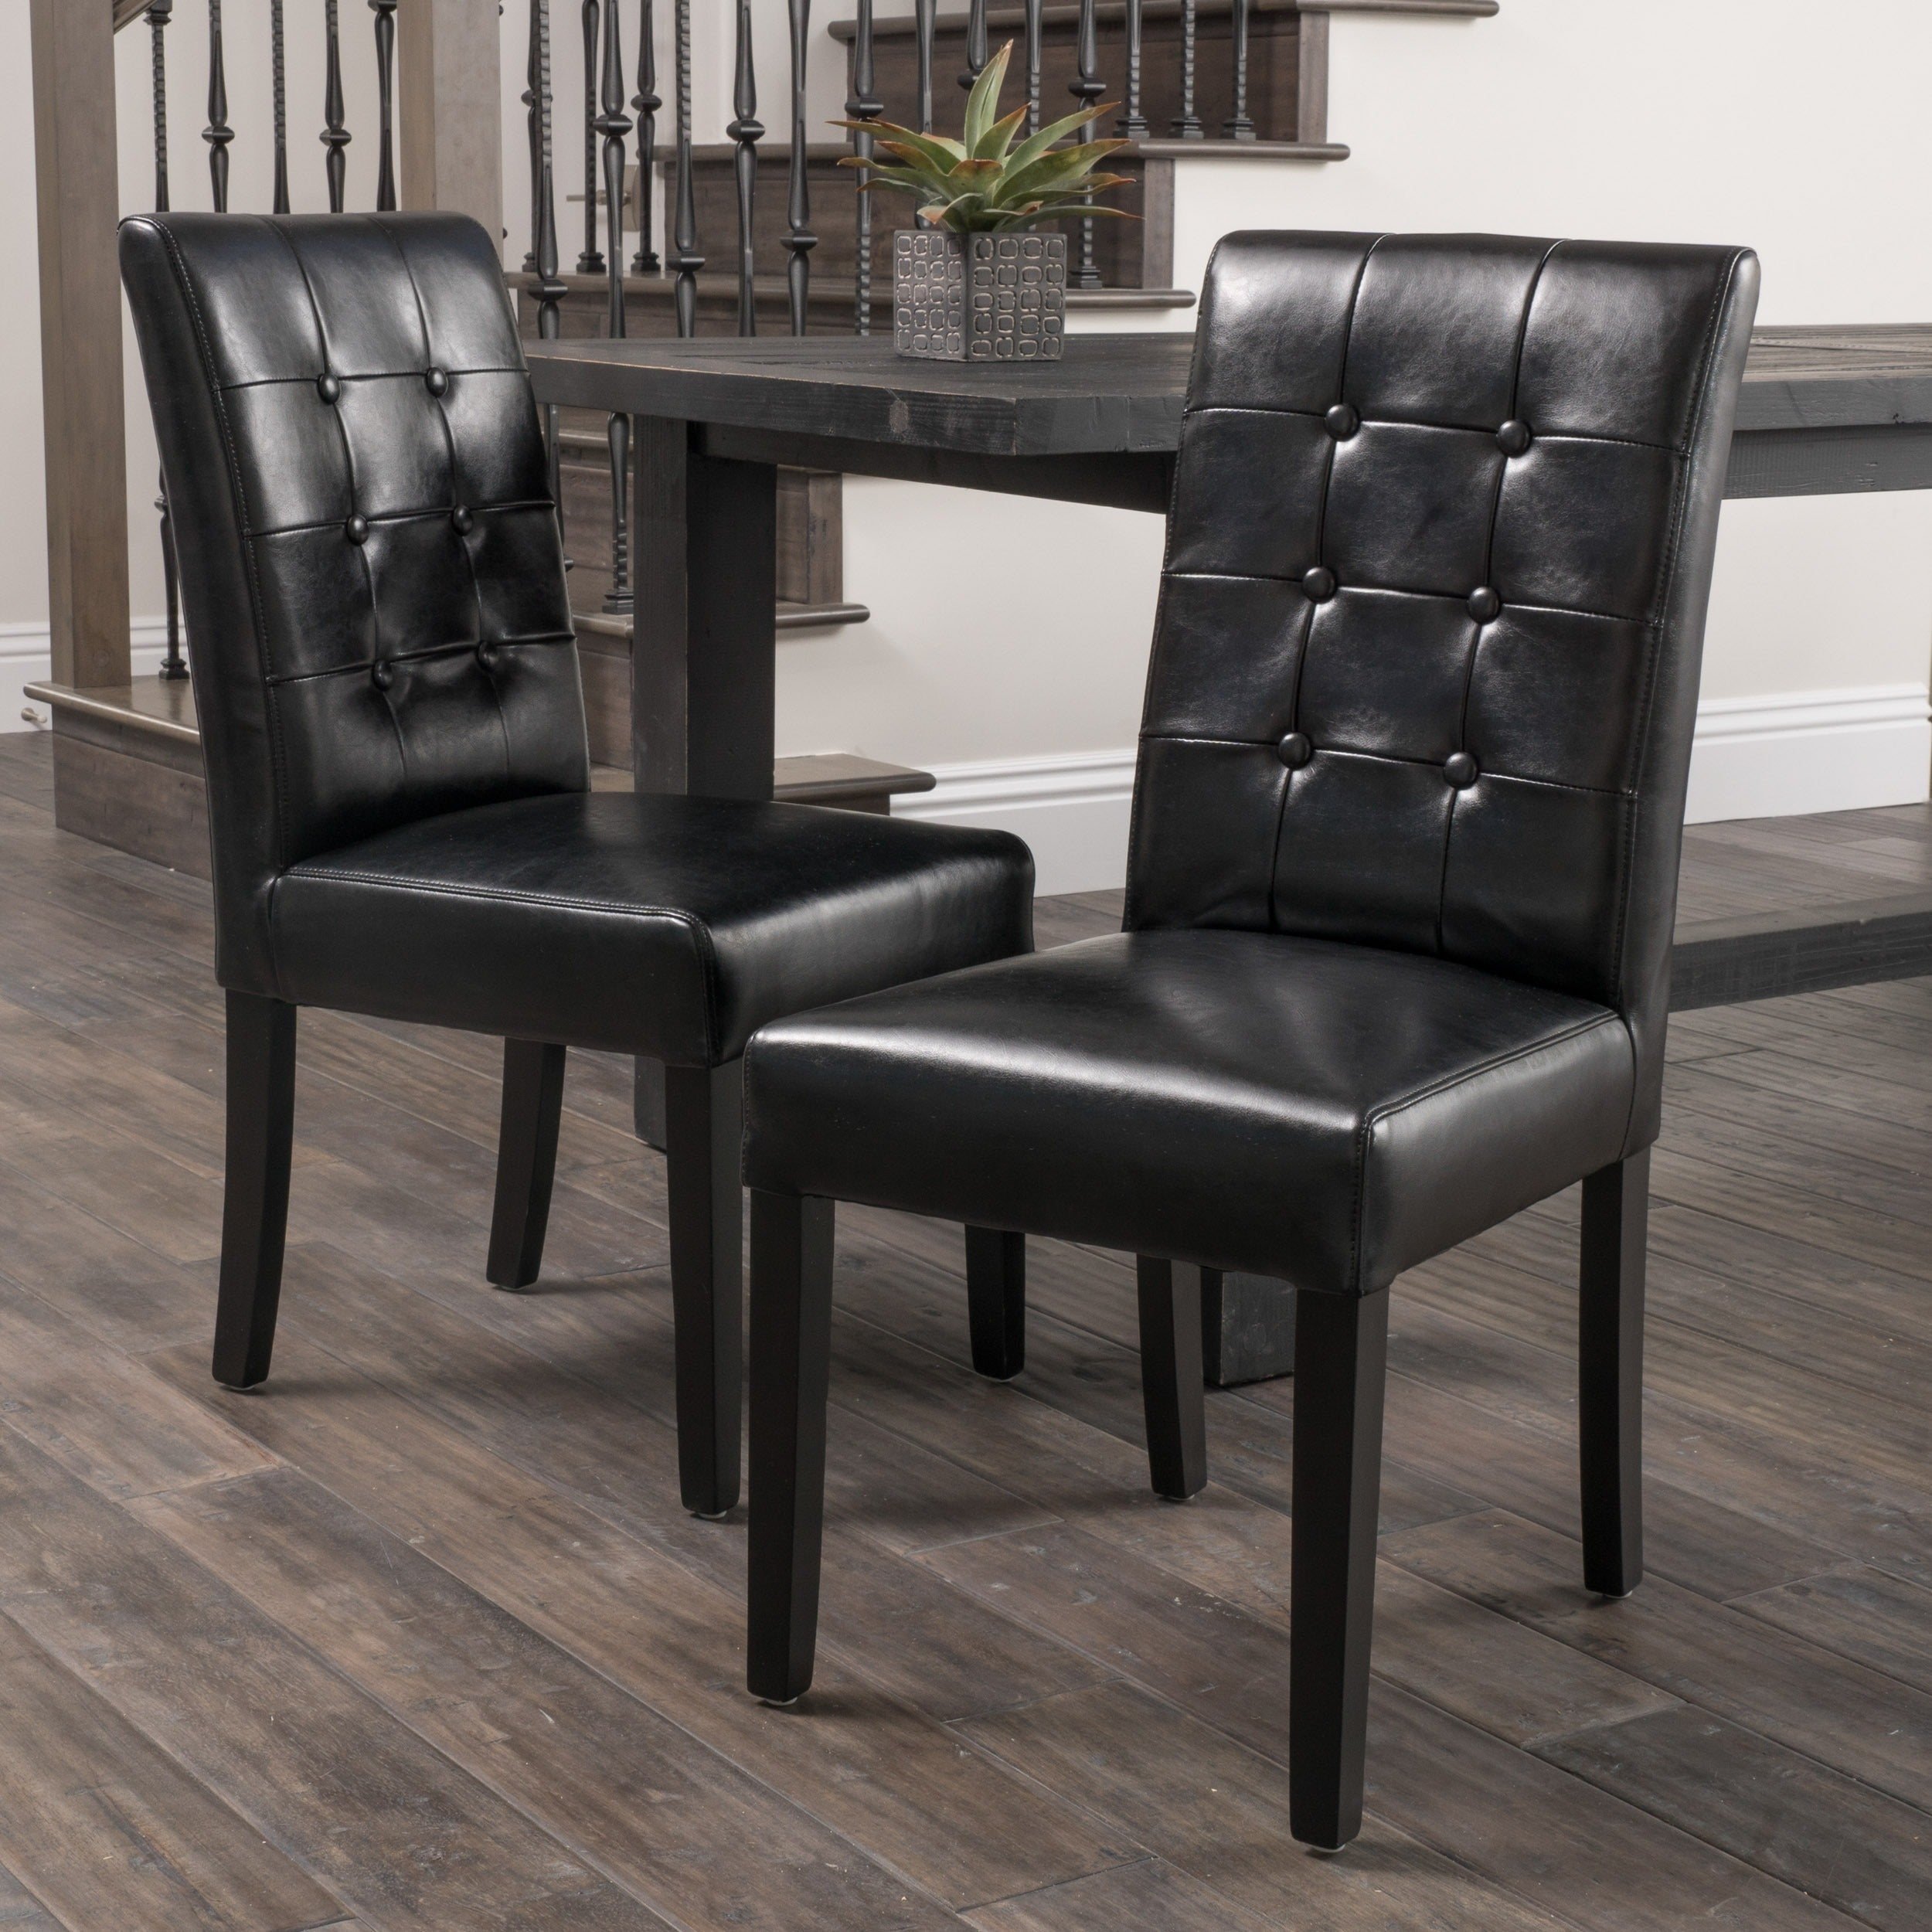 Amazing Roland Black Leather Dining Chairs Set Of 2 By Christopher Knight Home Alphanode Cool Chair Designs And Ideas Alphanodeonline